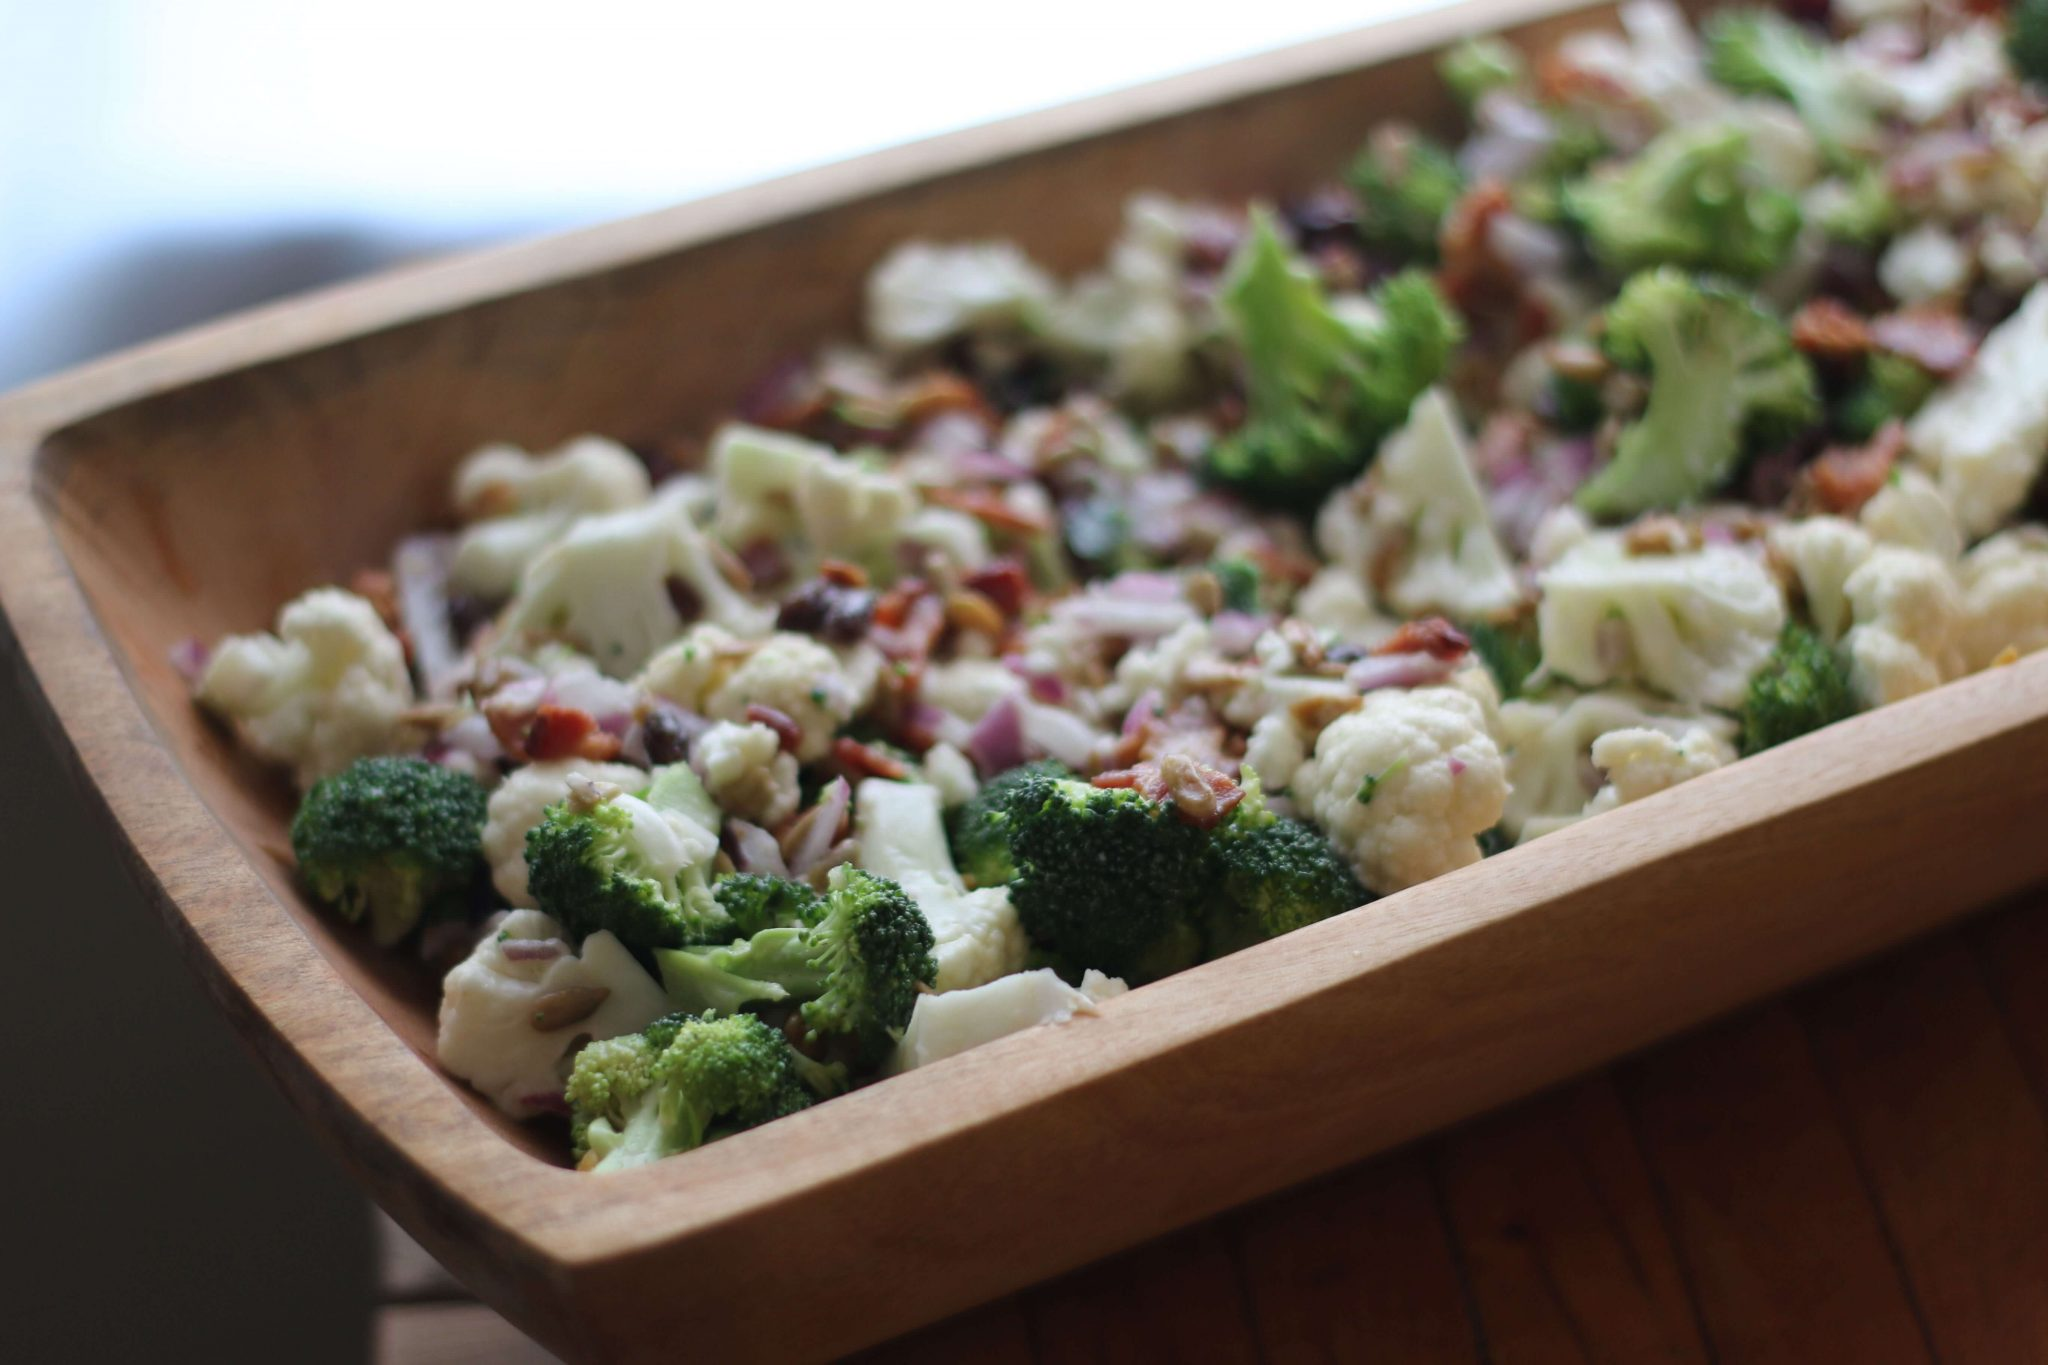 Broccoli, Cauliflower, and Bacon Salad, what a delicious easy recipe! This looks so pretty, not to mention festive. Especially for Thanksgiving!